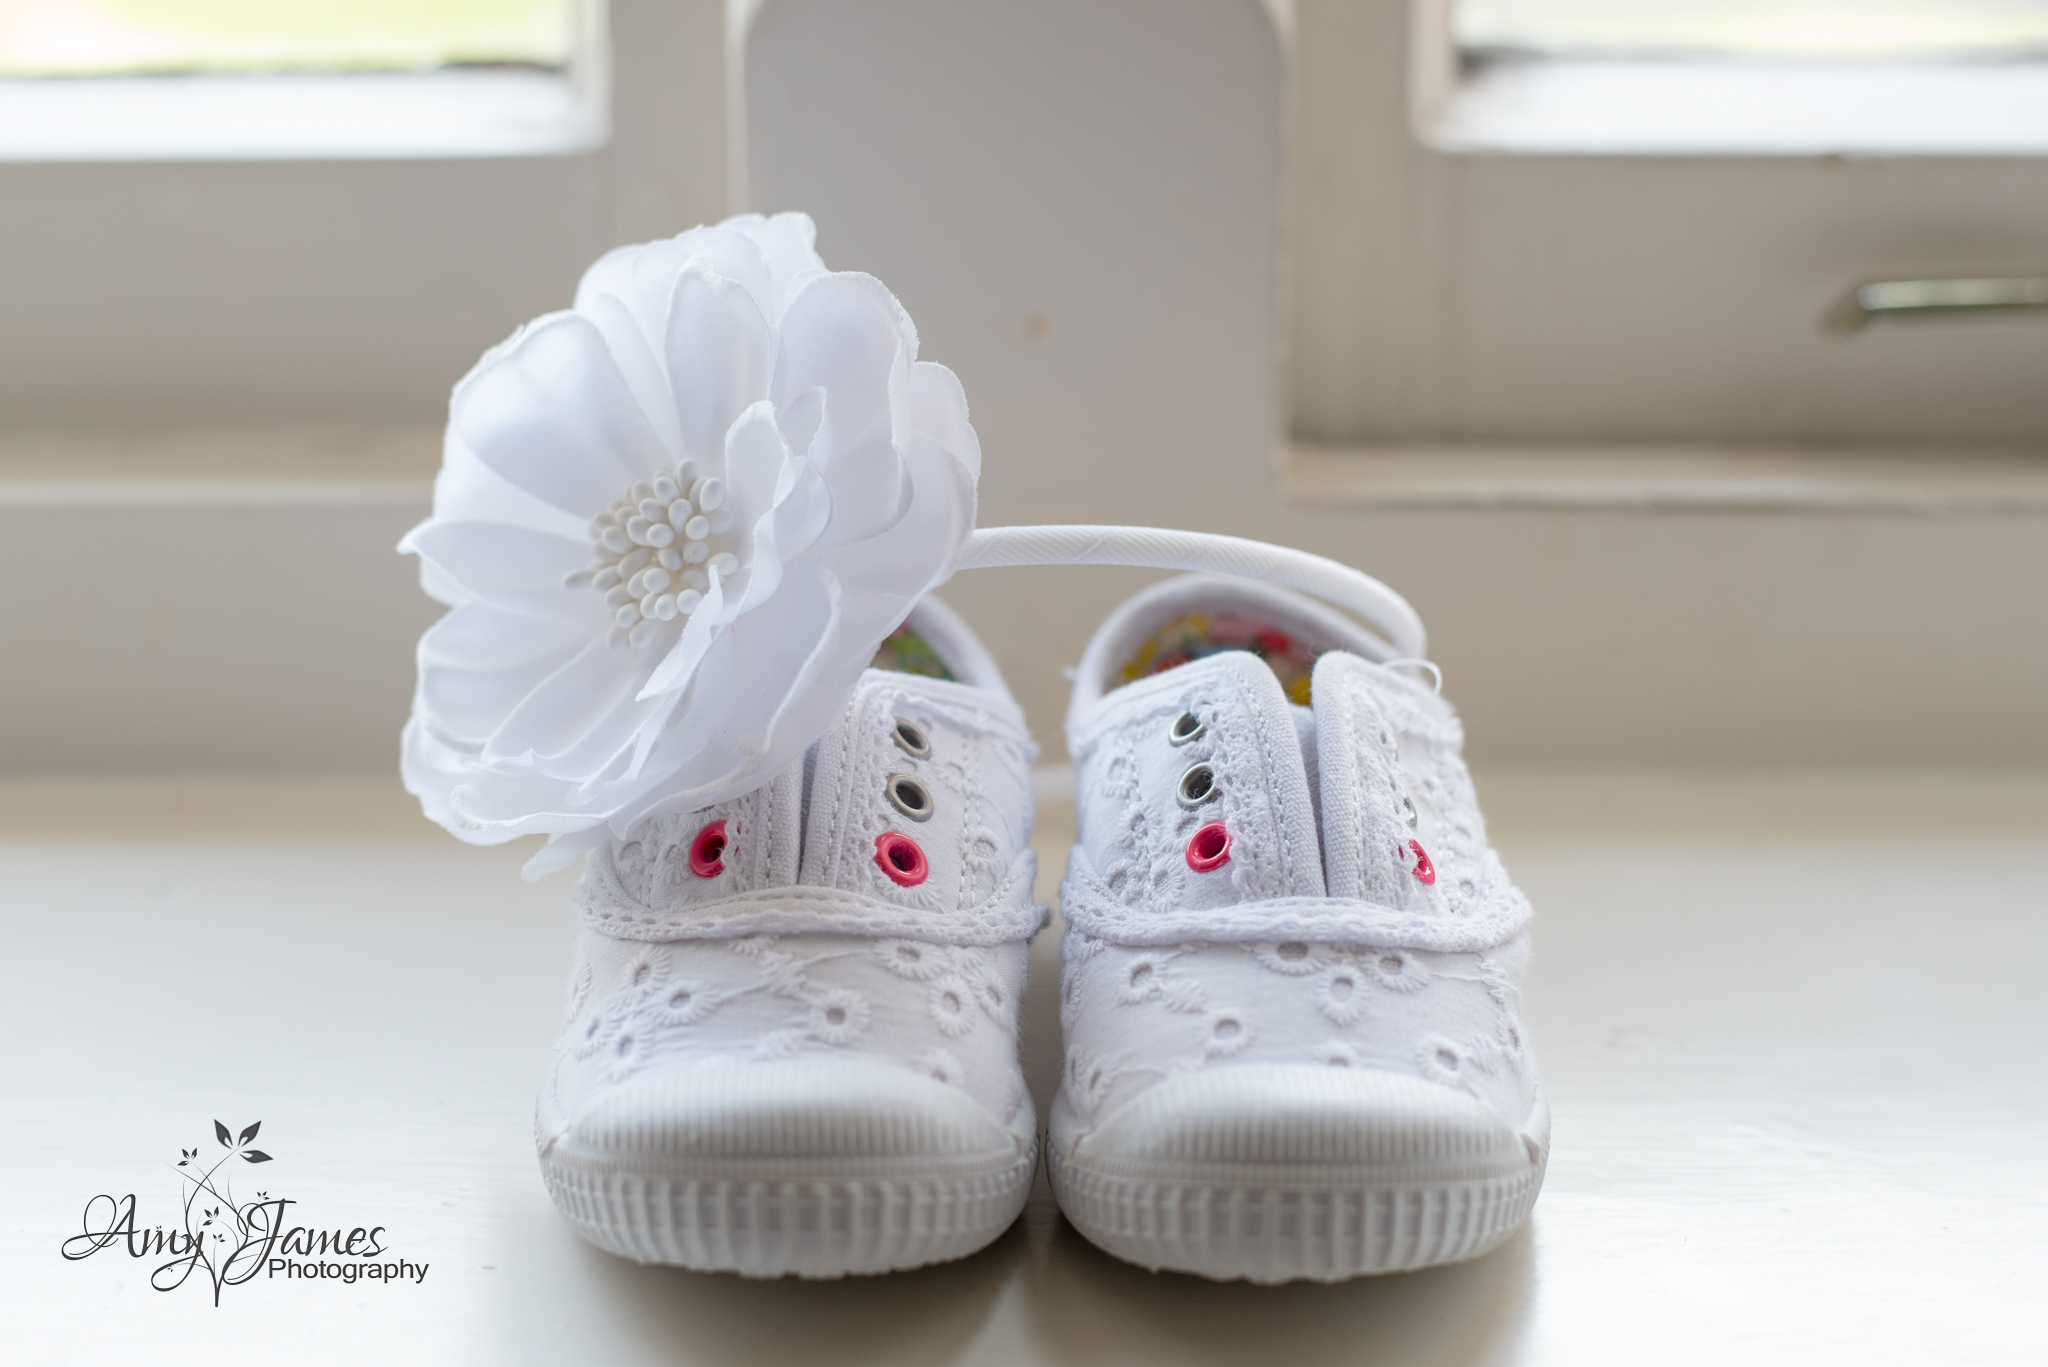 Amy James Photography // Wedding photographer Hampshire // Basingstoke wedding // Hampshire wedding venues // Bridesmaid shoes child // Bridesmaid trainers